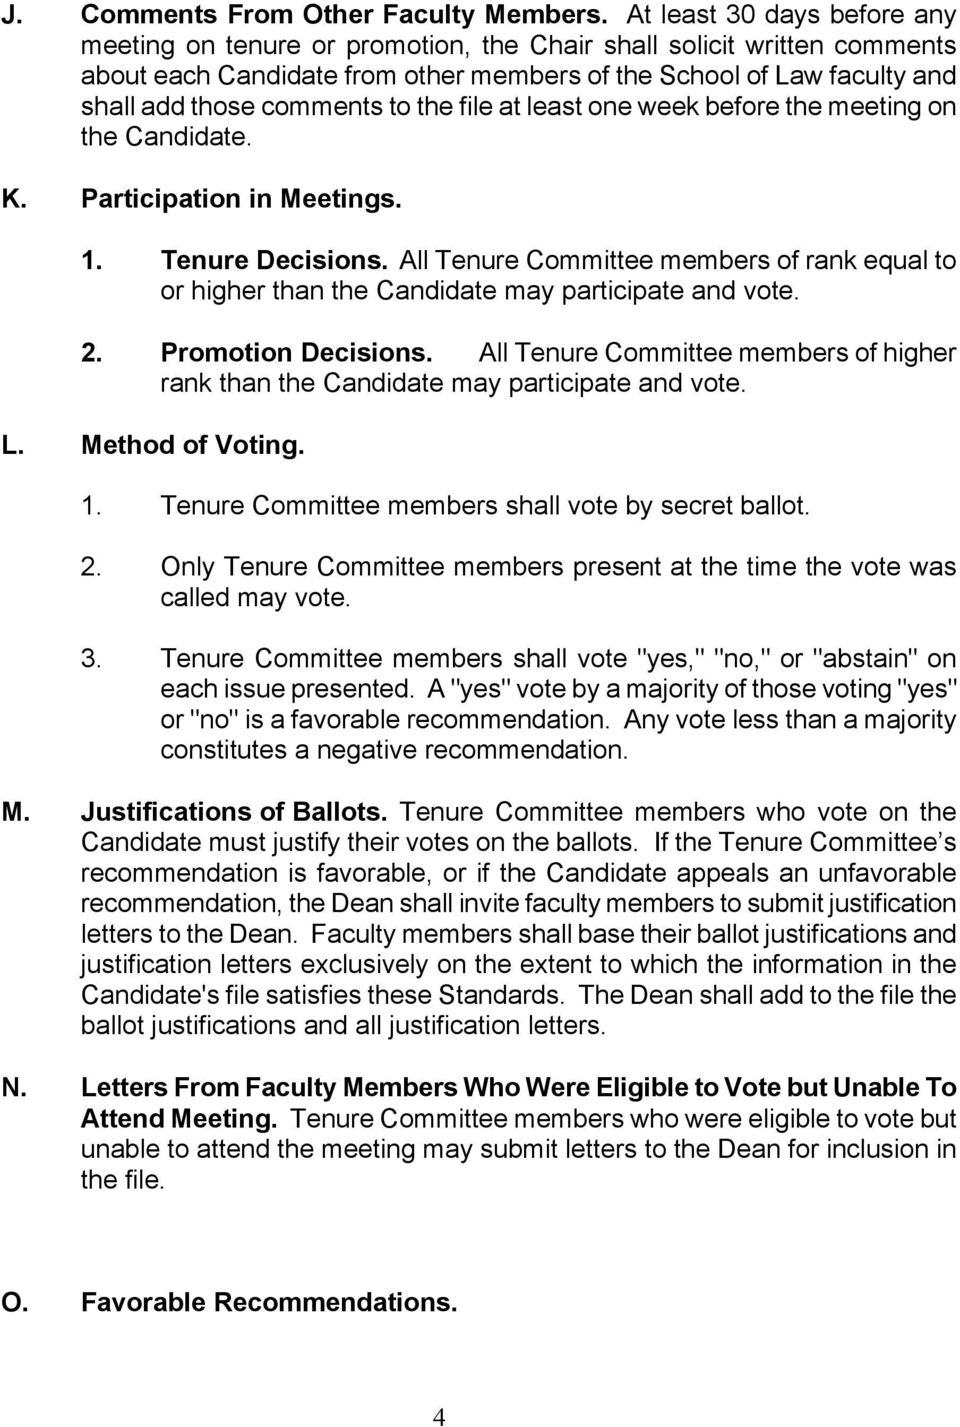 to the file at least one week before the meeting on the Candidate. K. Participation in Meetings. 1. Tenure Decisions.